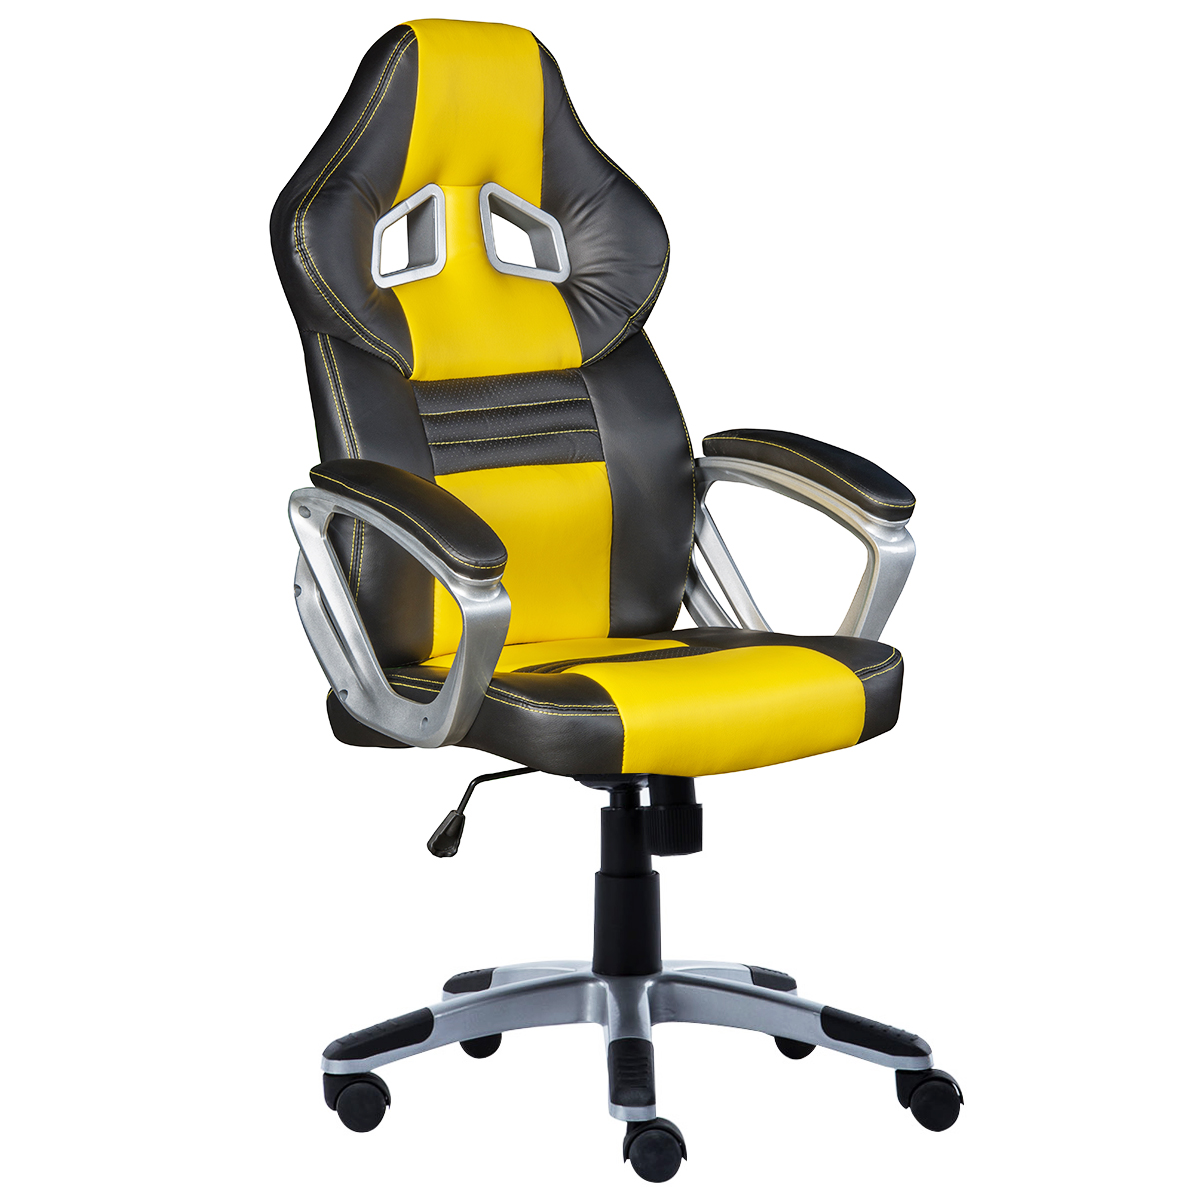 High quality office chair swivel chair synthetic leather computer chair lacework lifting armchair gaming chair free shipping designer chair computer chair synthetic resin and metal production out of fashion chair modern